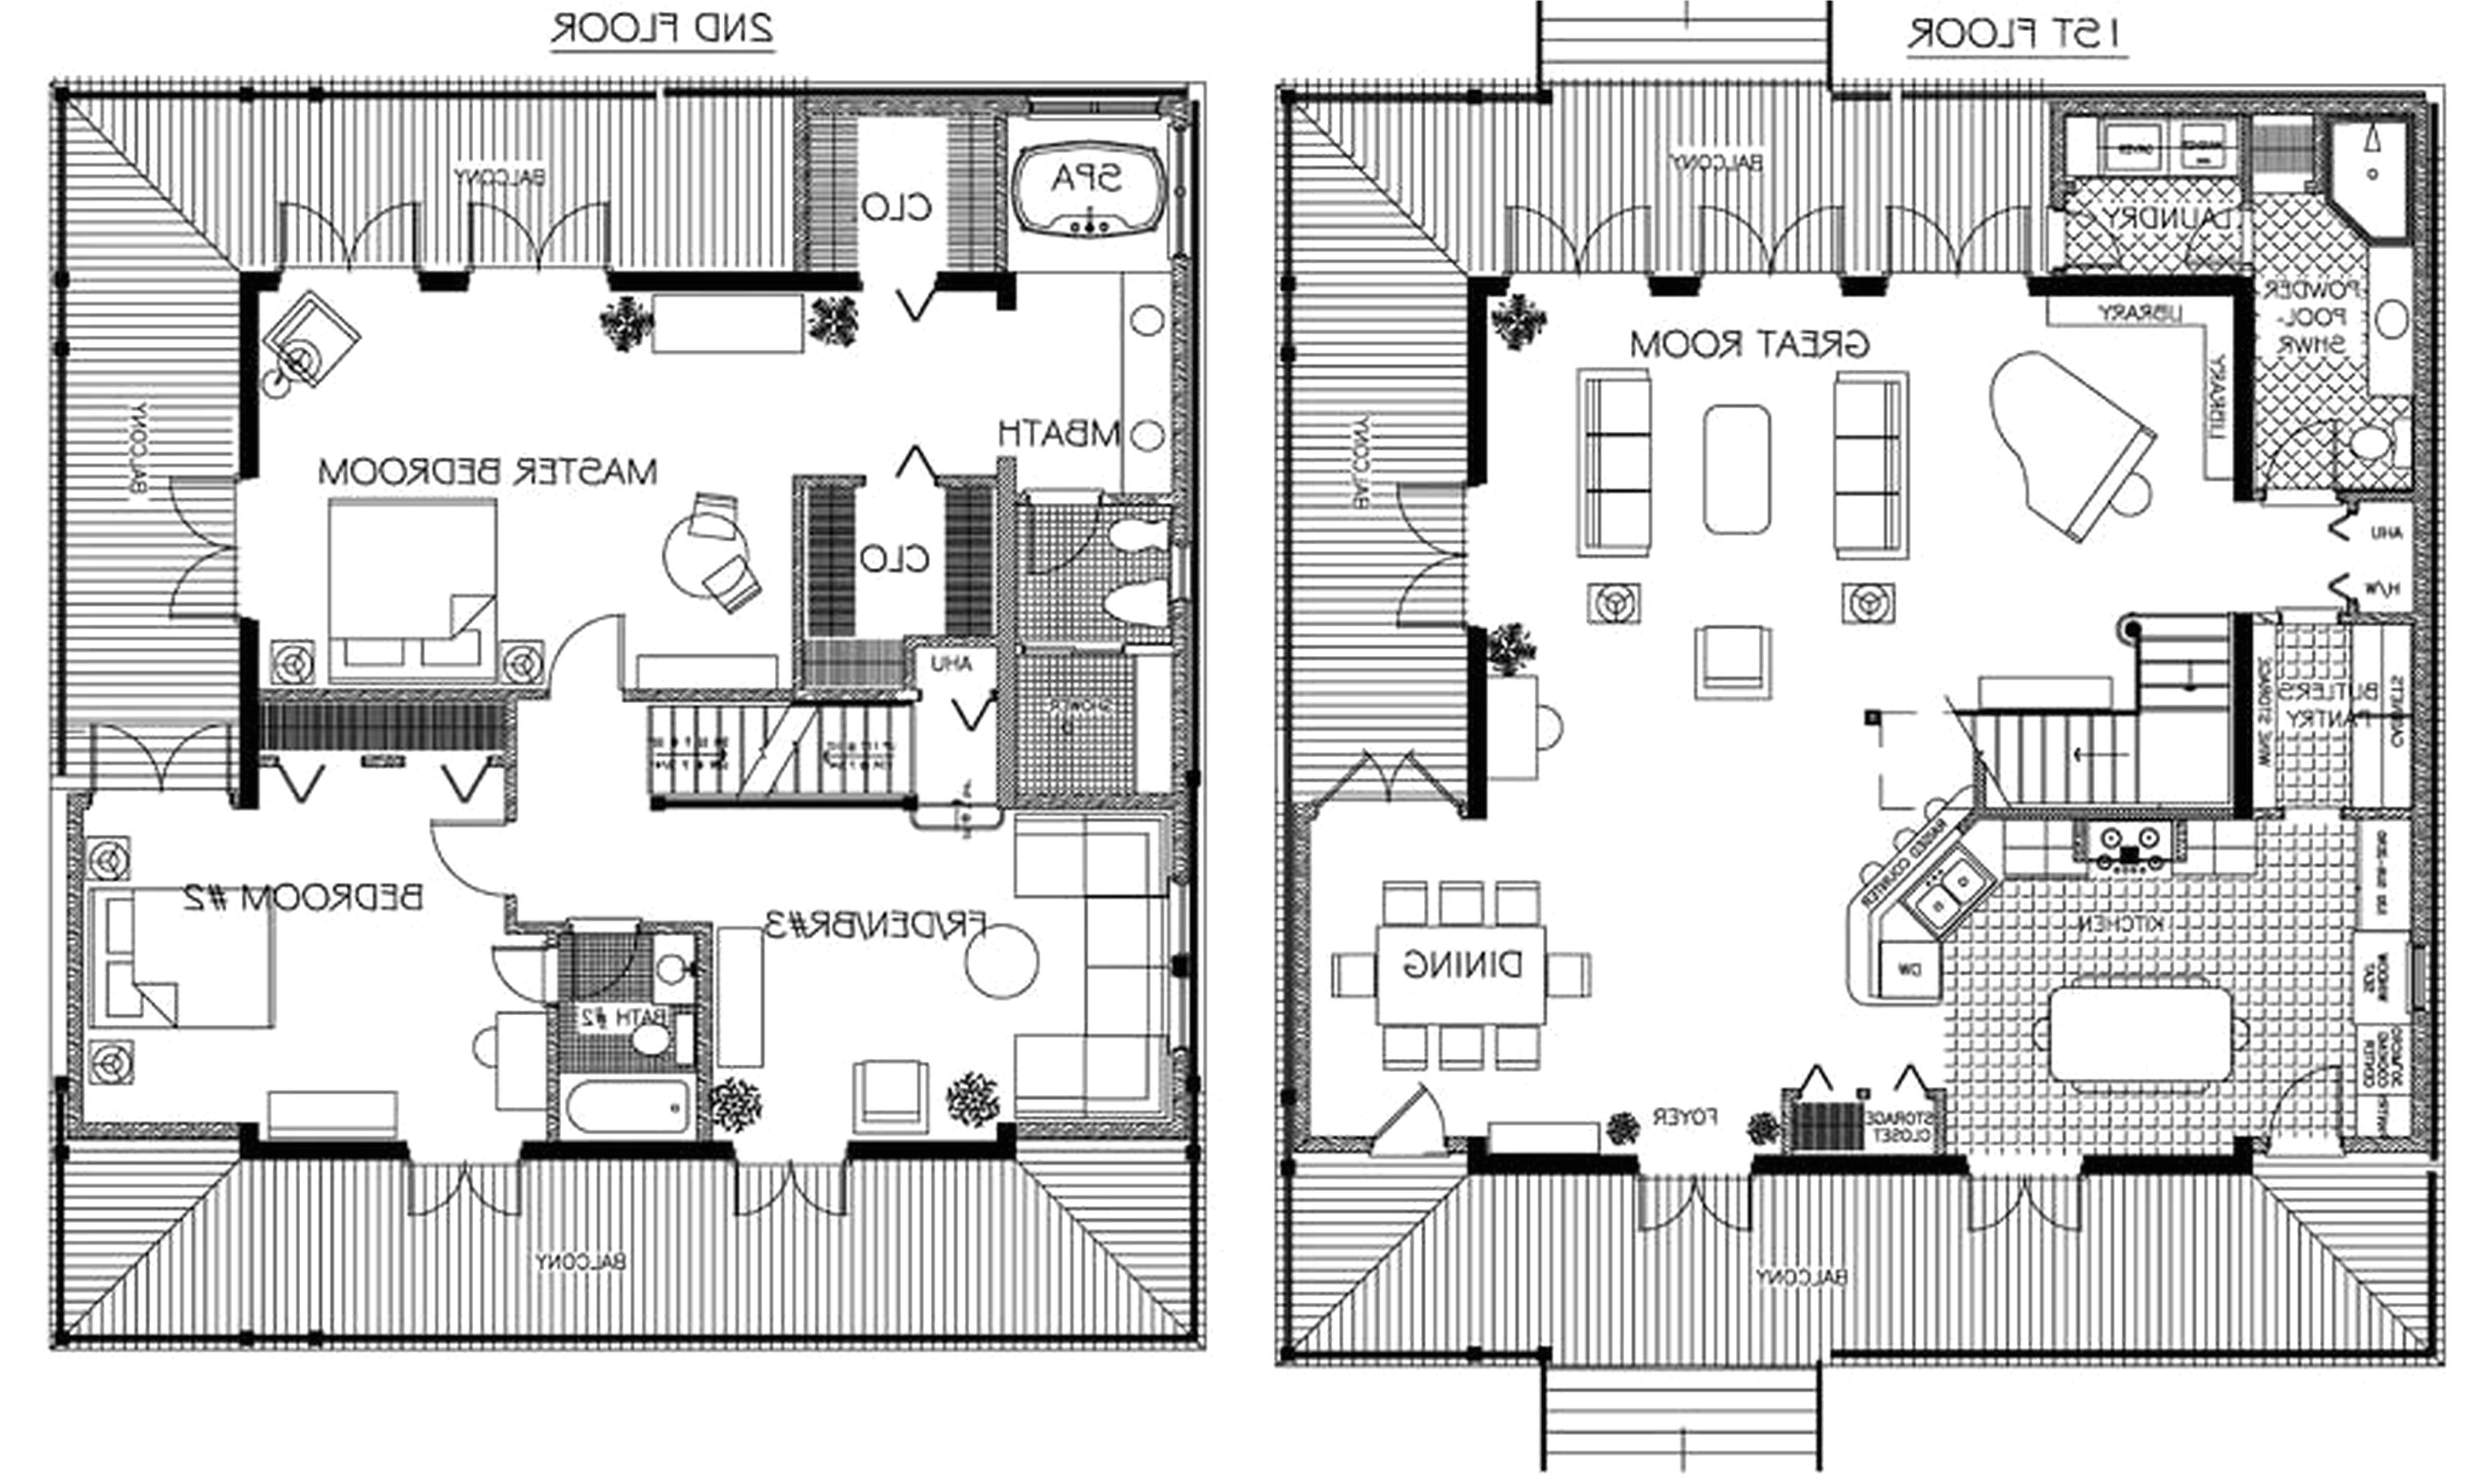 affordable lakefront home plans elegant open floor plans for ranch homes awesome 3 story house plans unique